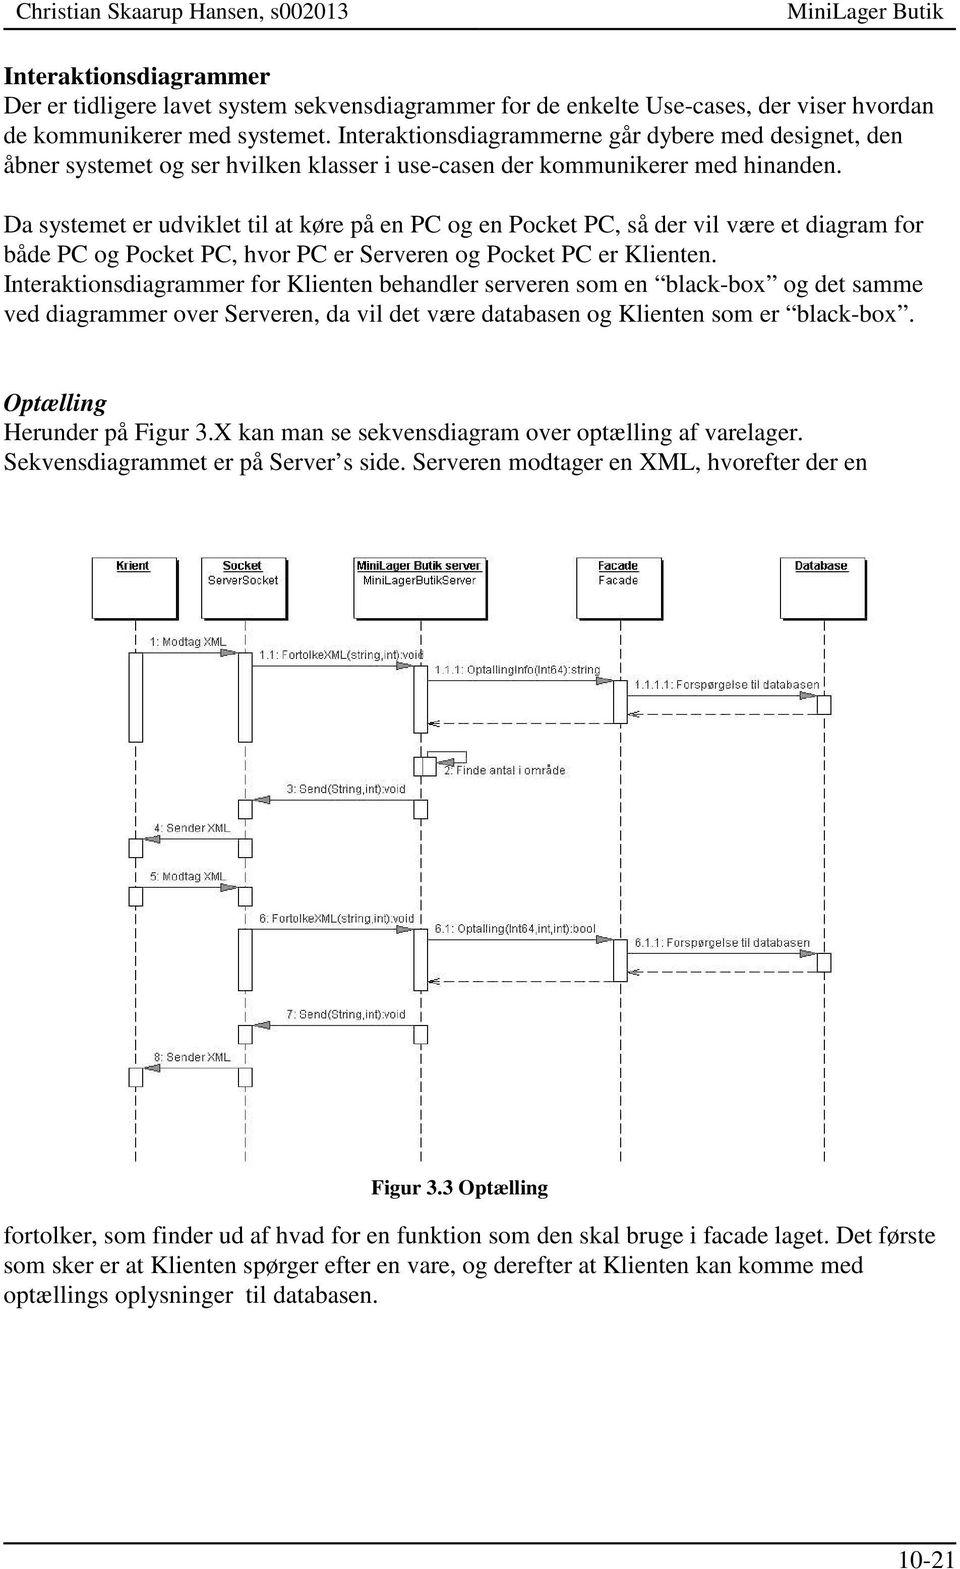 Da systemet er udviklet til at køre på en PC og en Pocket PC, så der vil være et diagram for både PC og Pocket PC, hvor PC er Serveren og Pocket PC er Klienten.